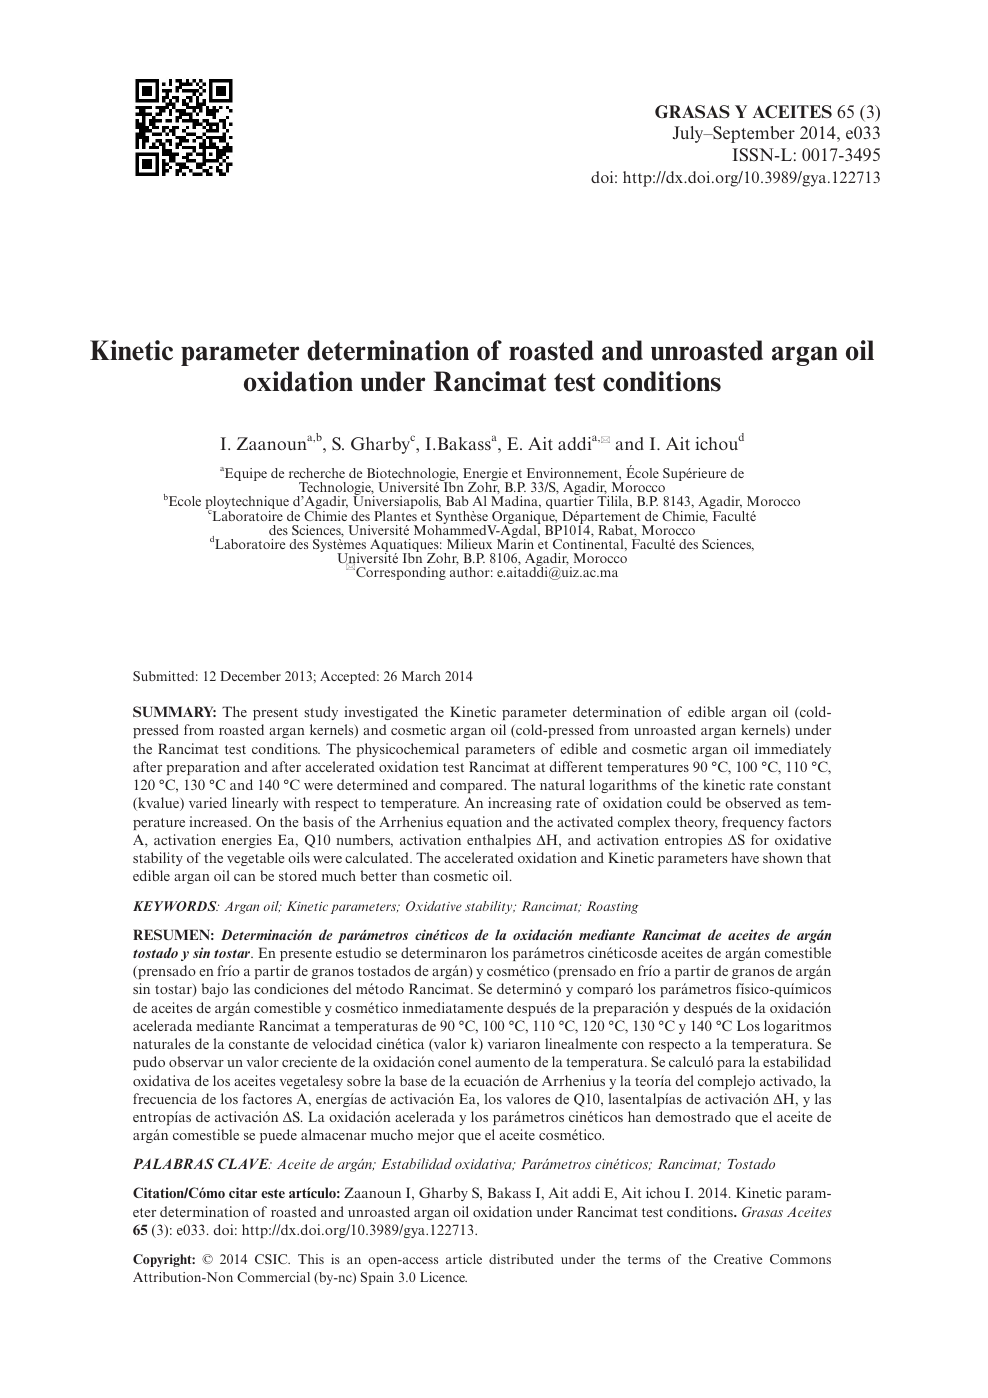 Kinetic Parameter Determination Of Roasted And Unroasted